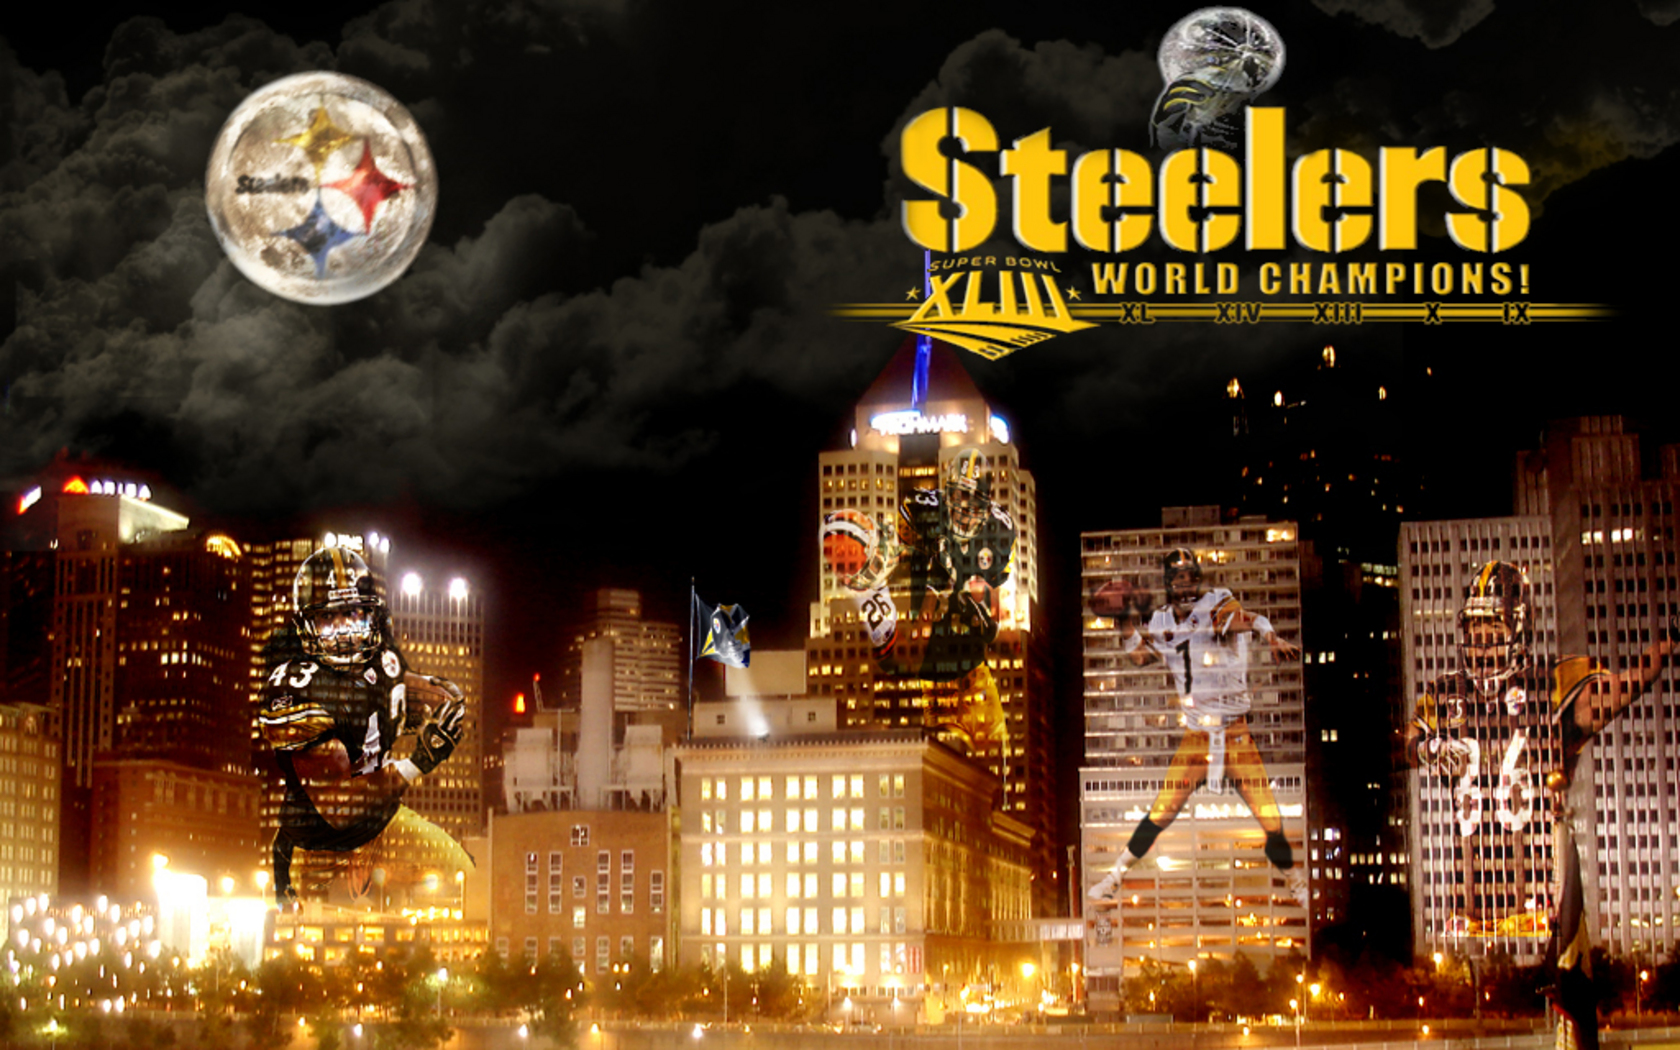 More Pittsburgh Steelers wallpapers 1680x1050